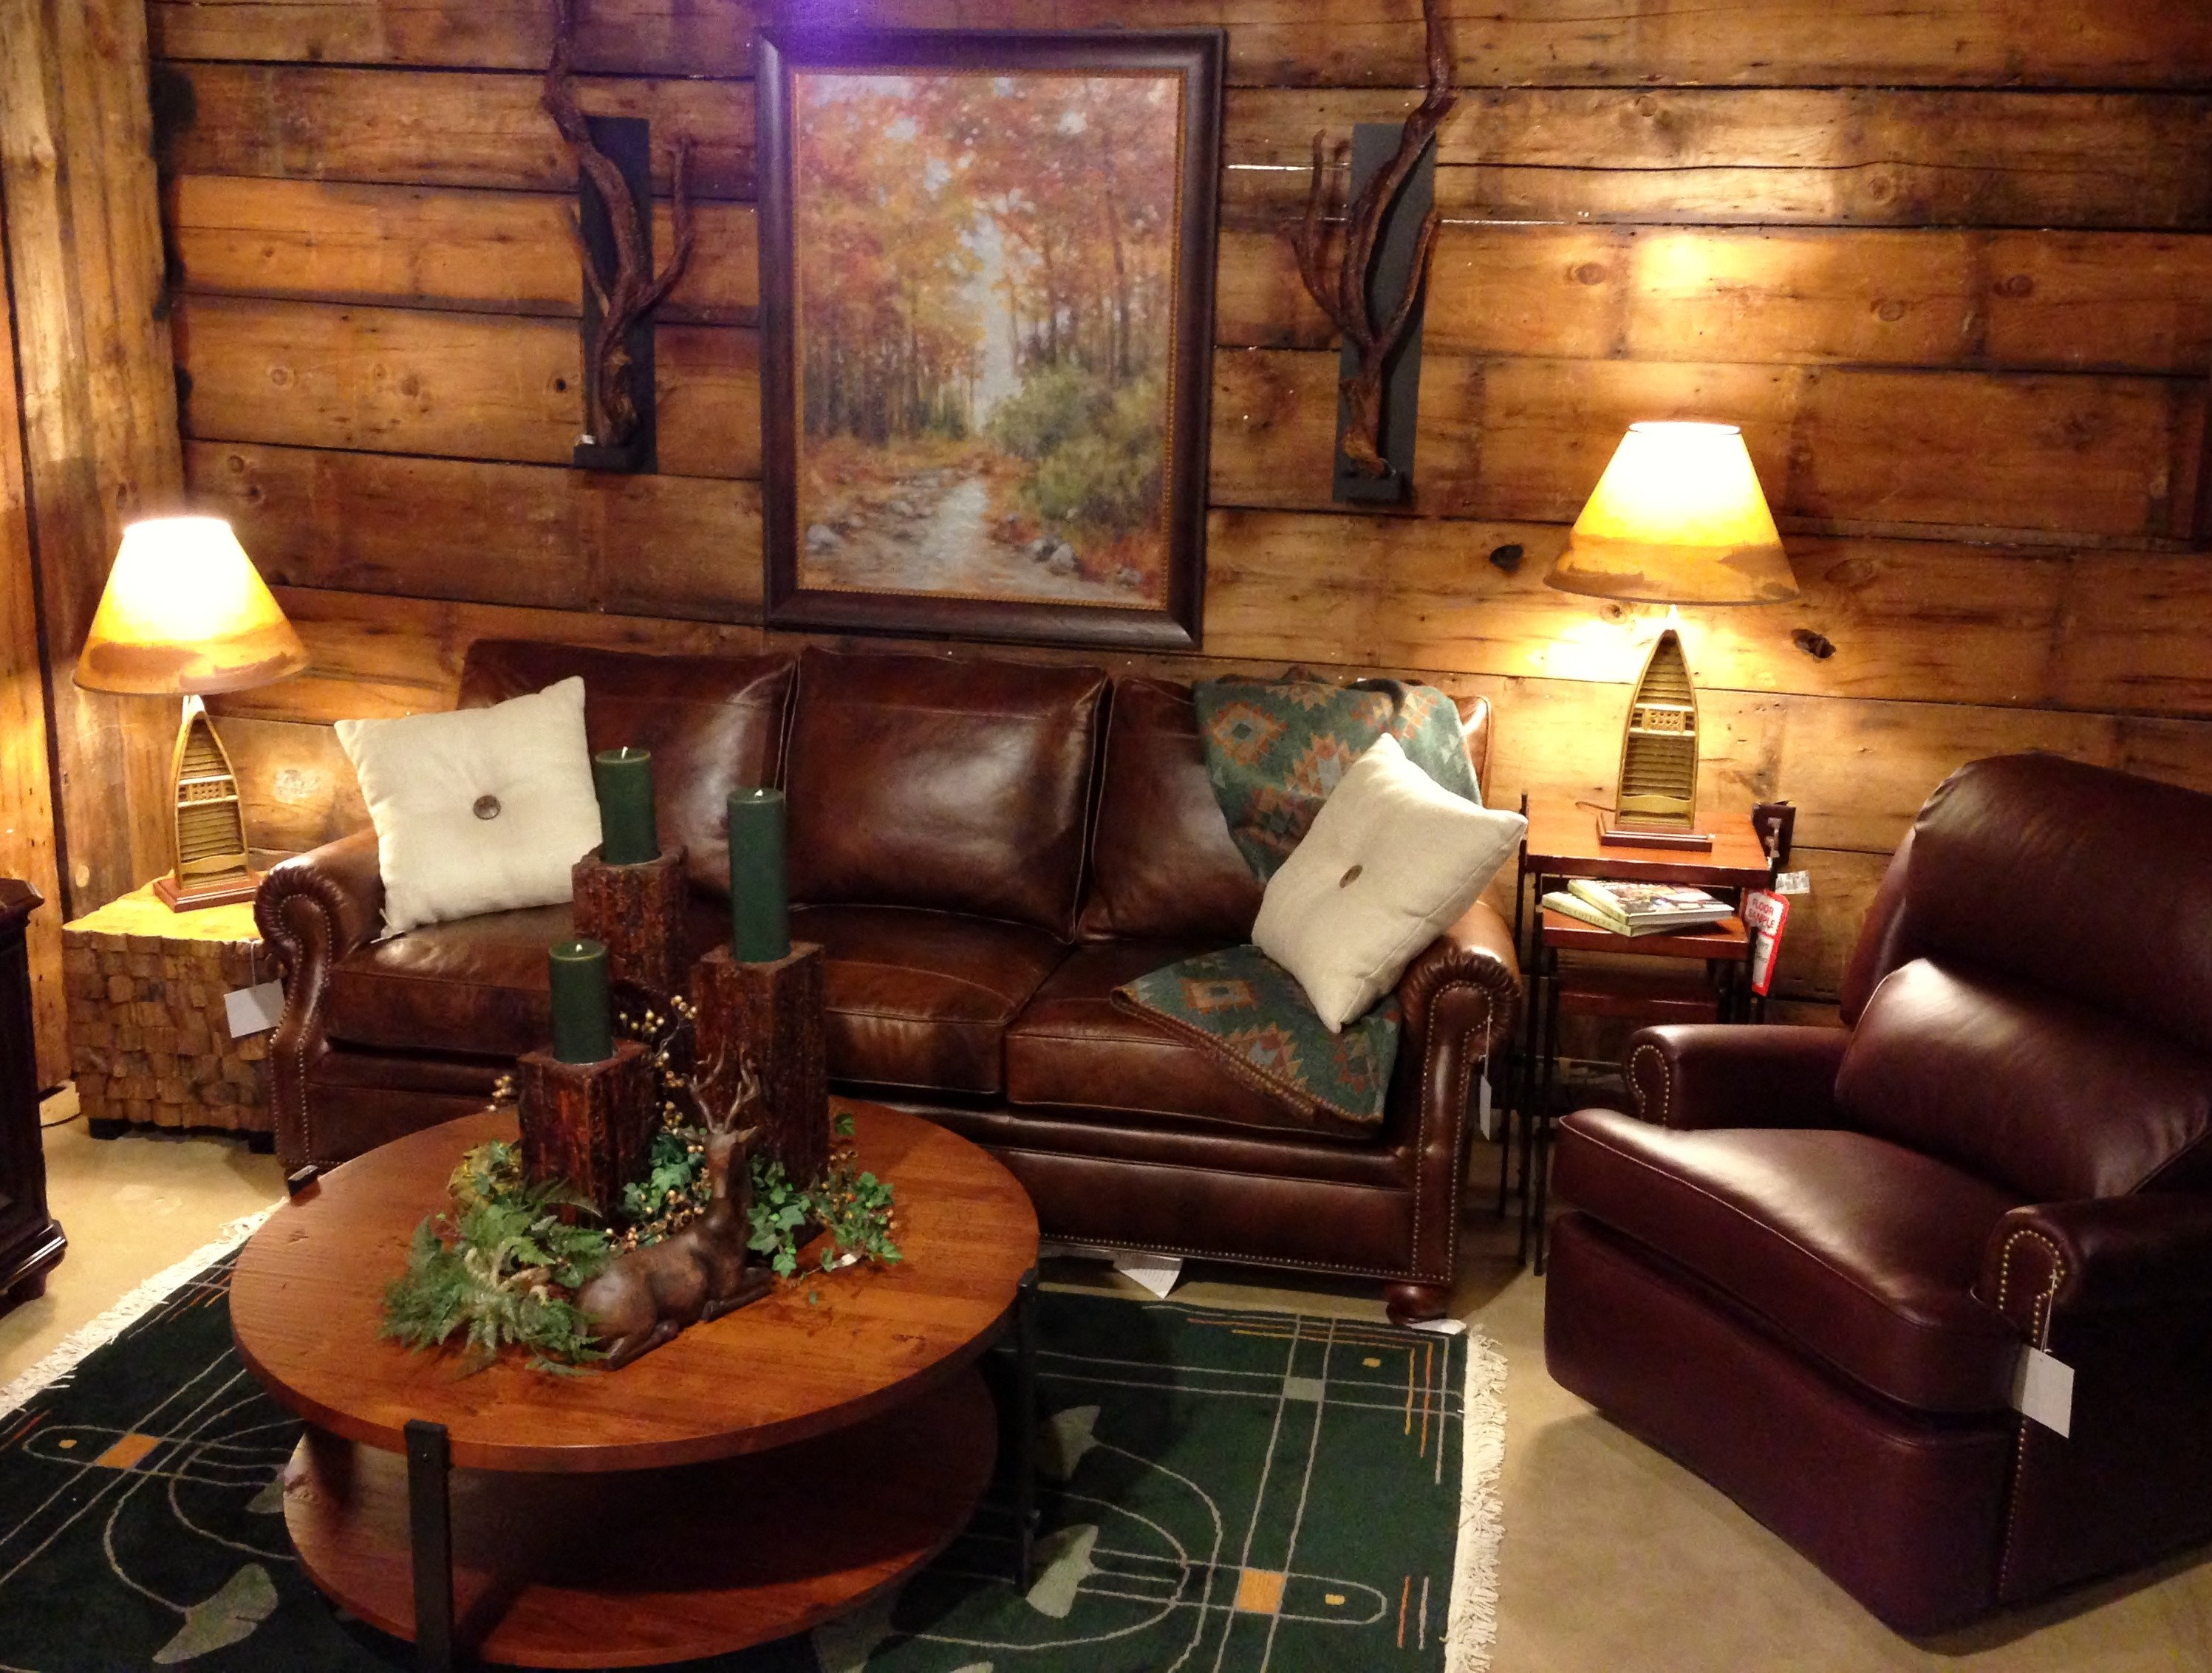 Modern Rustic Decor Living Room Lovely which Living Room is Right for You